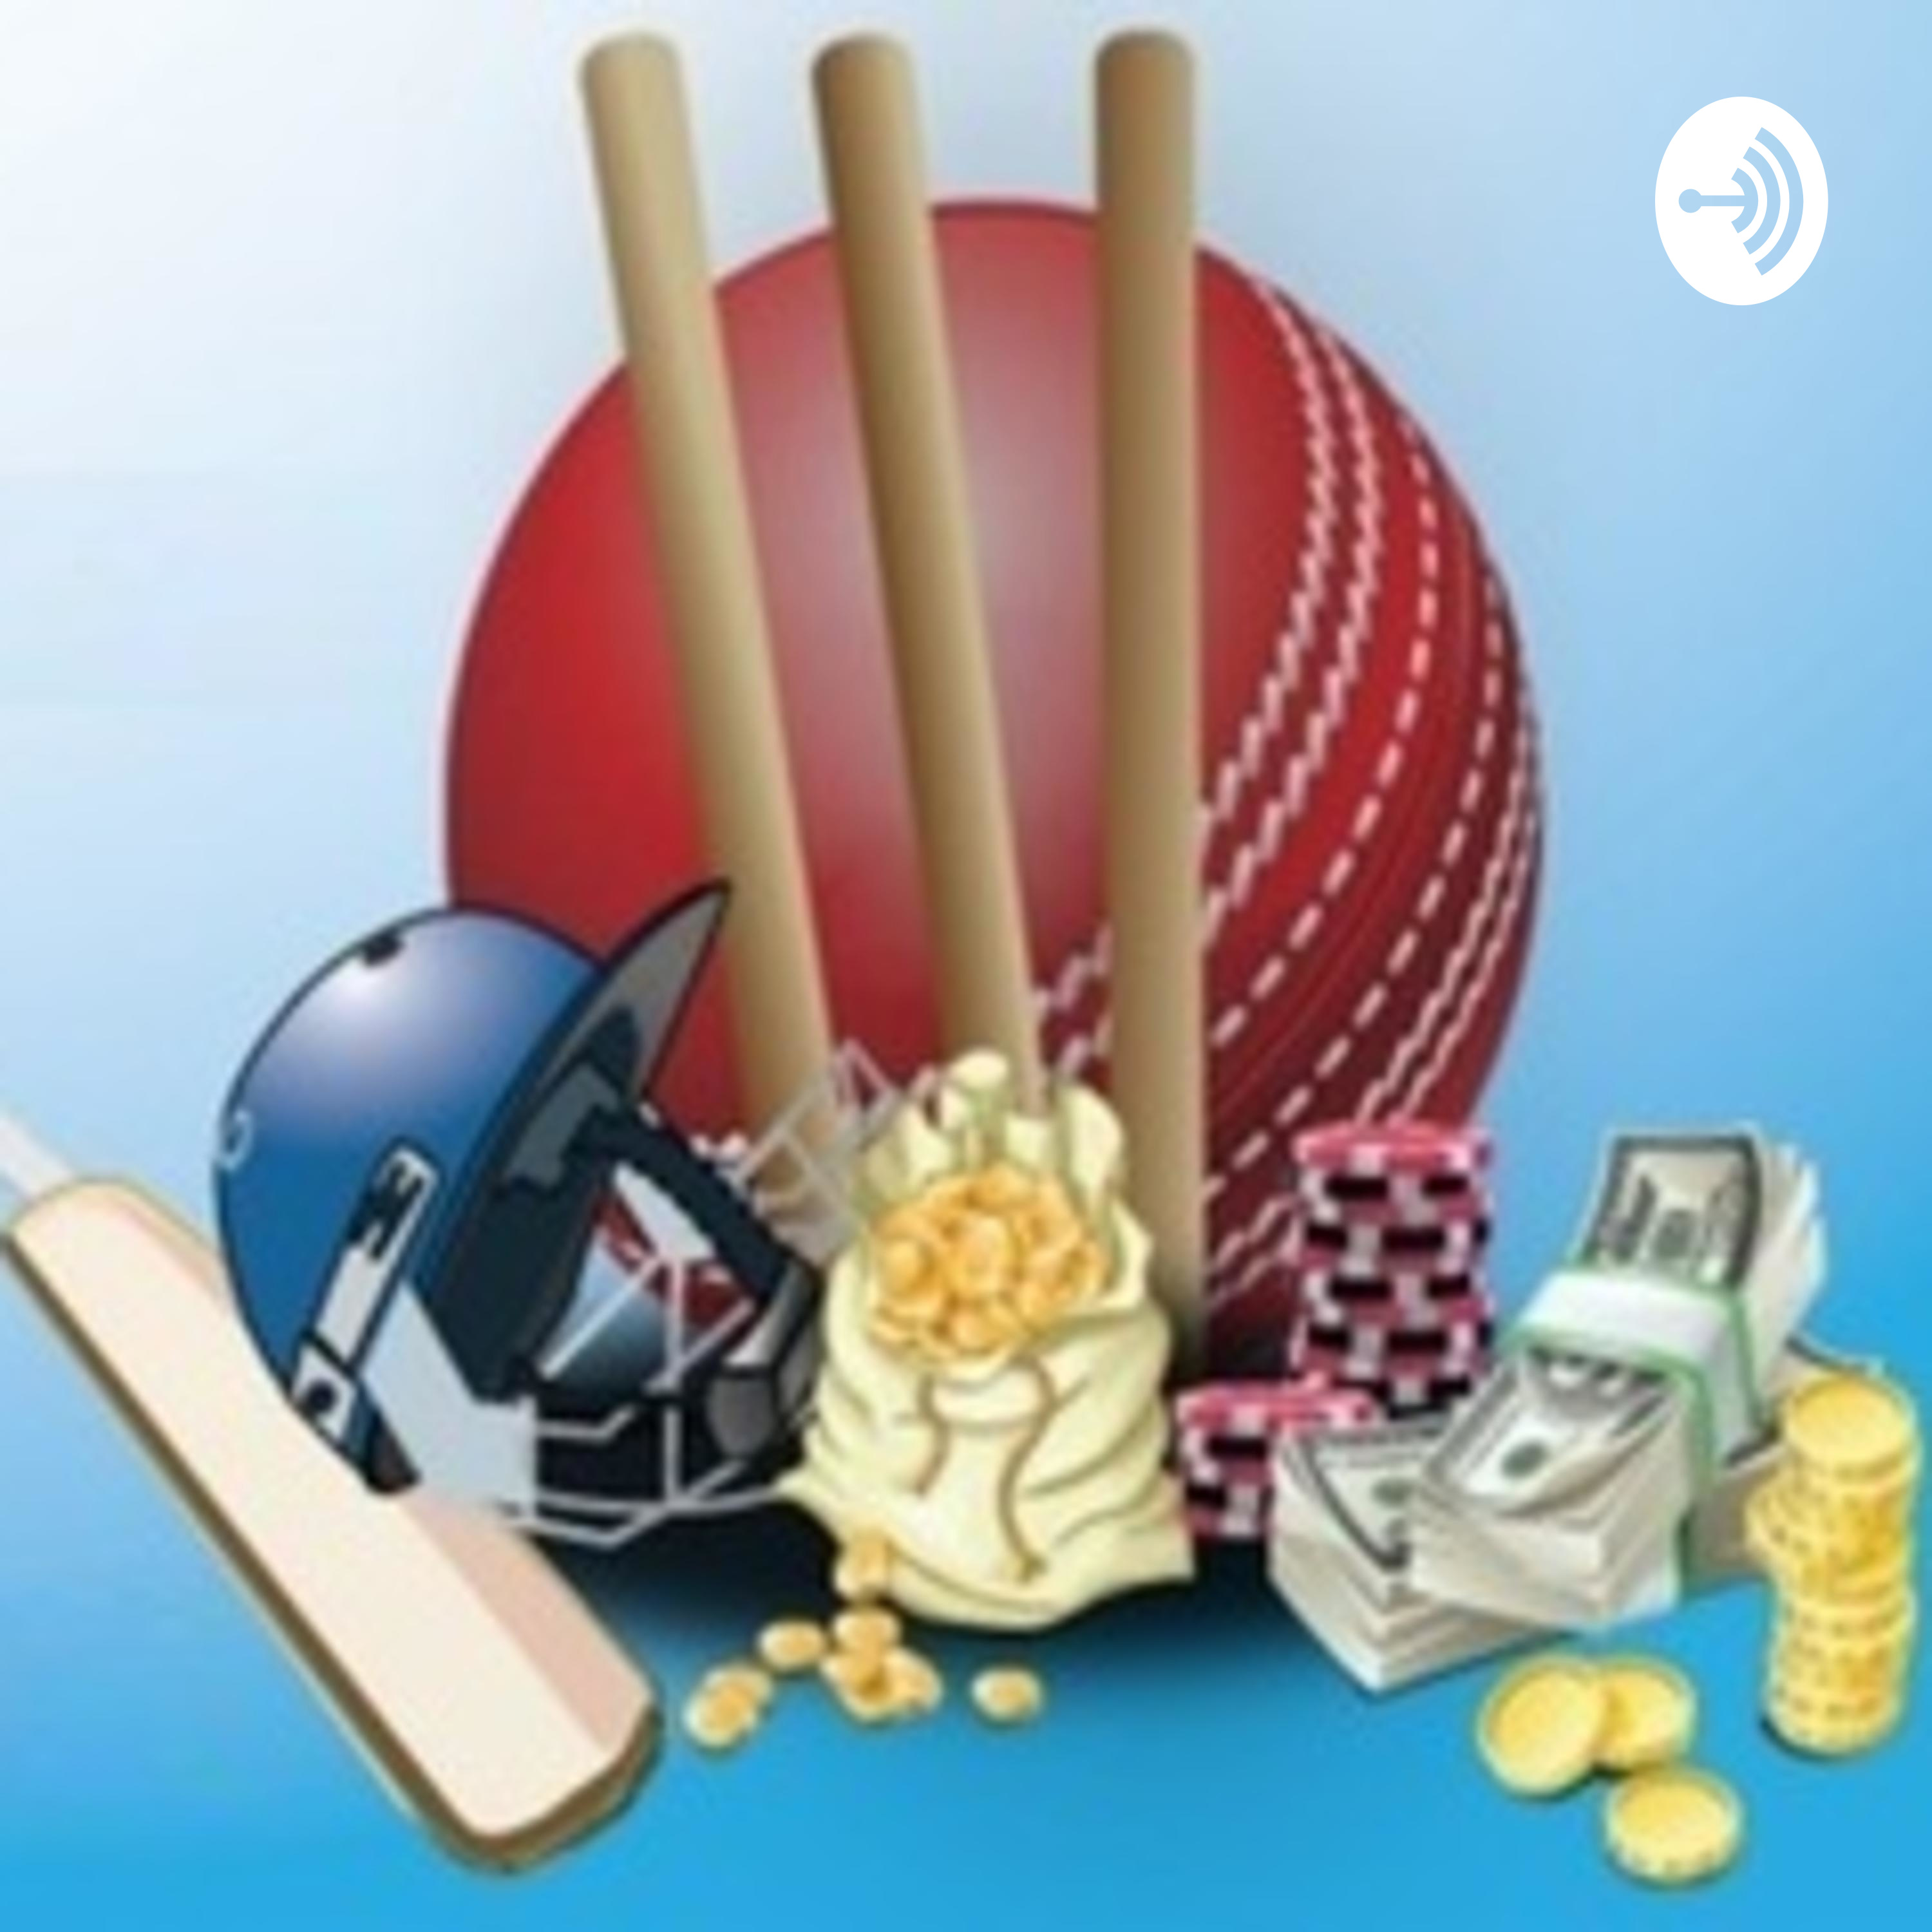 Online cricket betting addax super arena betting